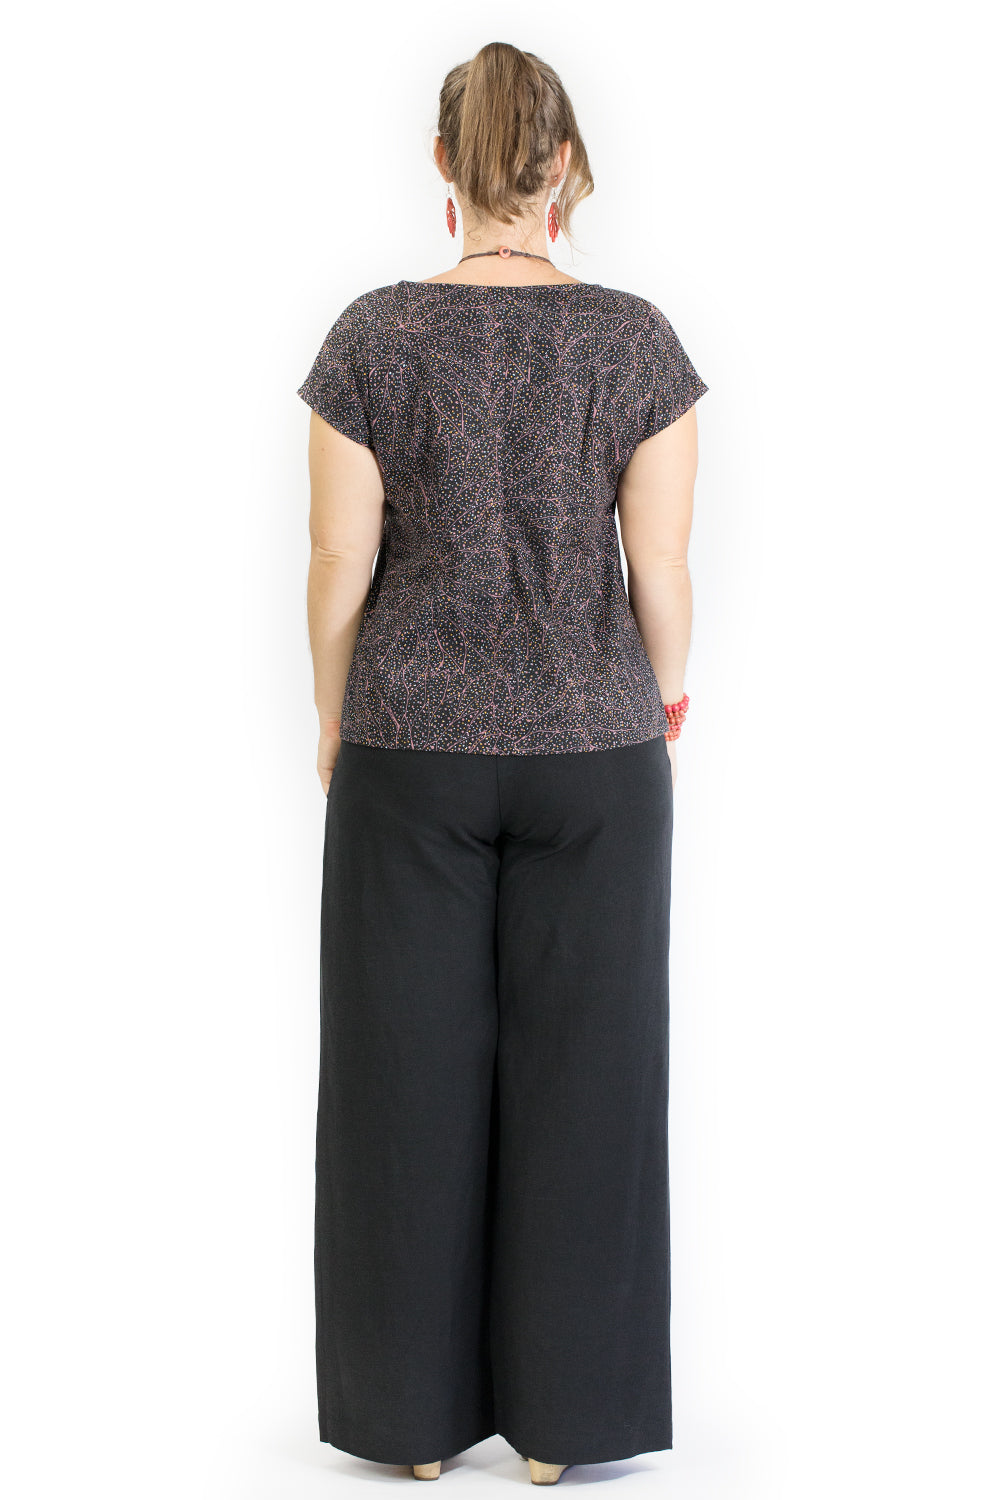 Verge Pants - Black Linen/Viscose